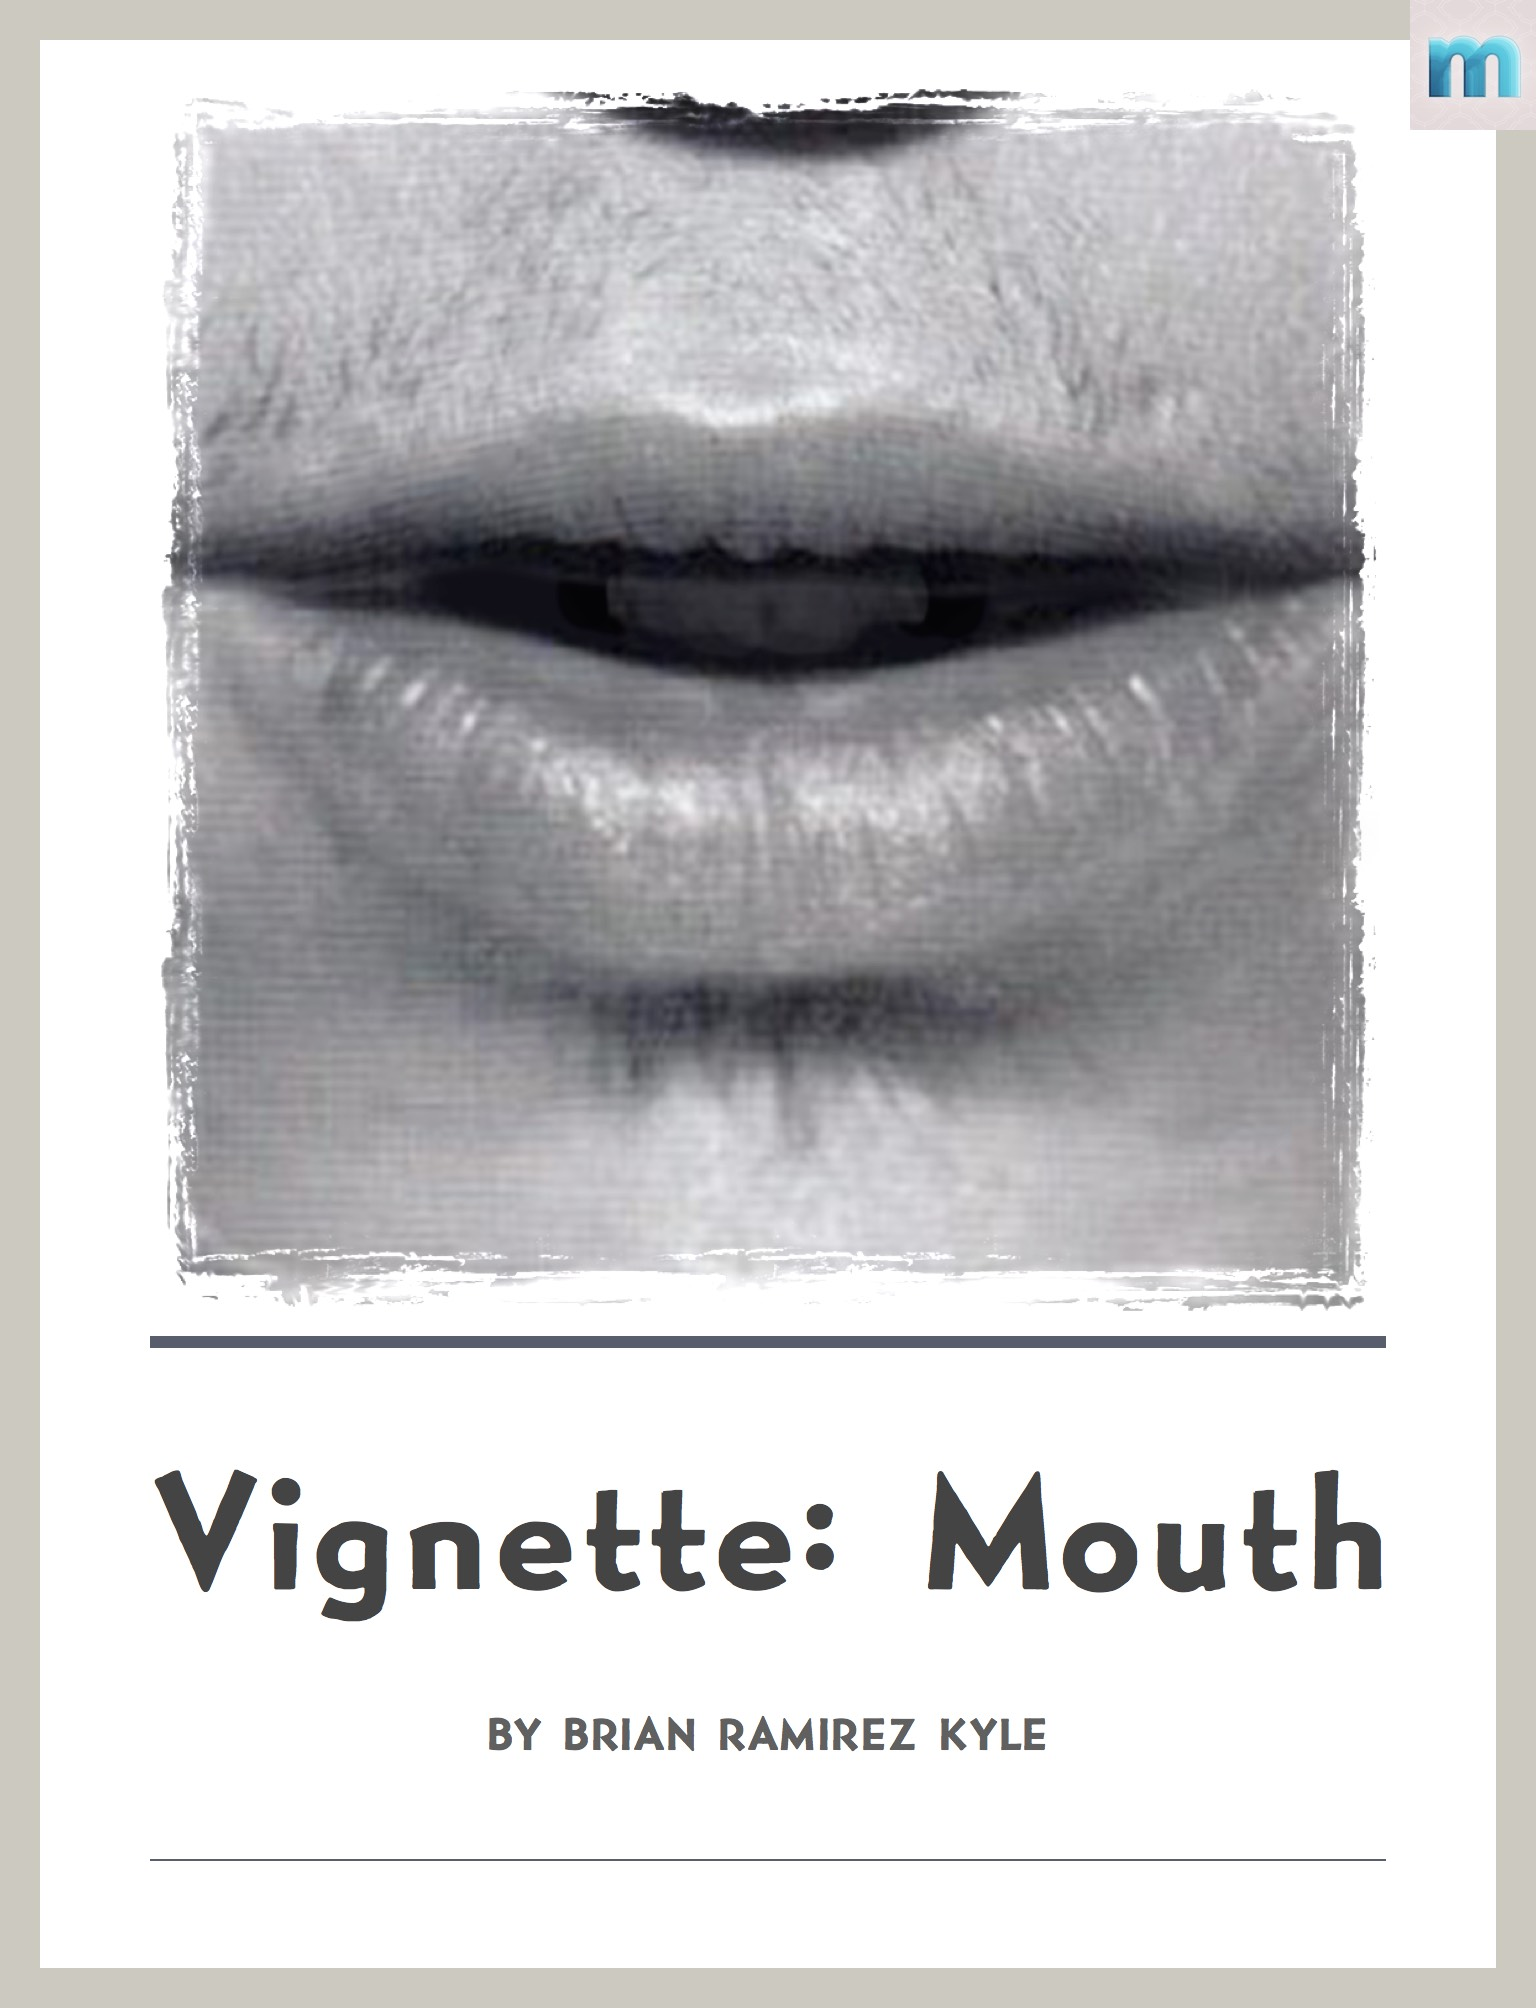 Vignette: Mouth by BRK